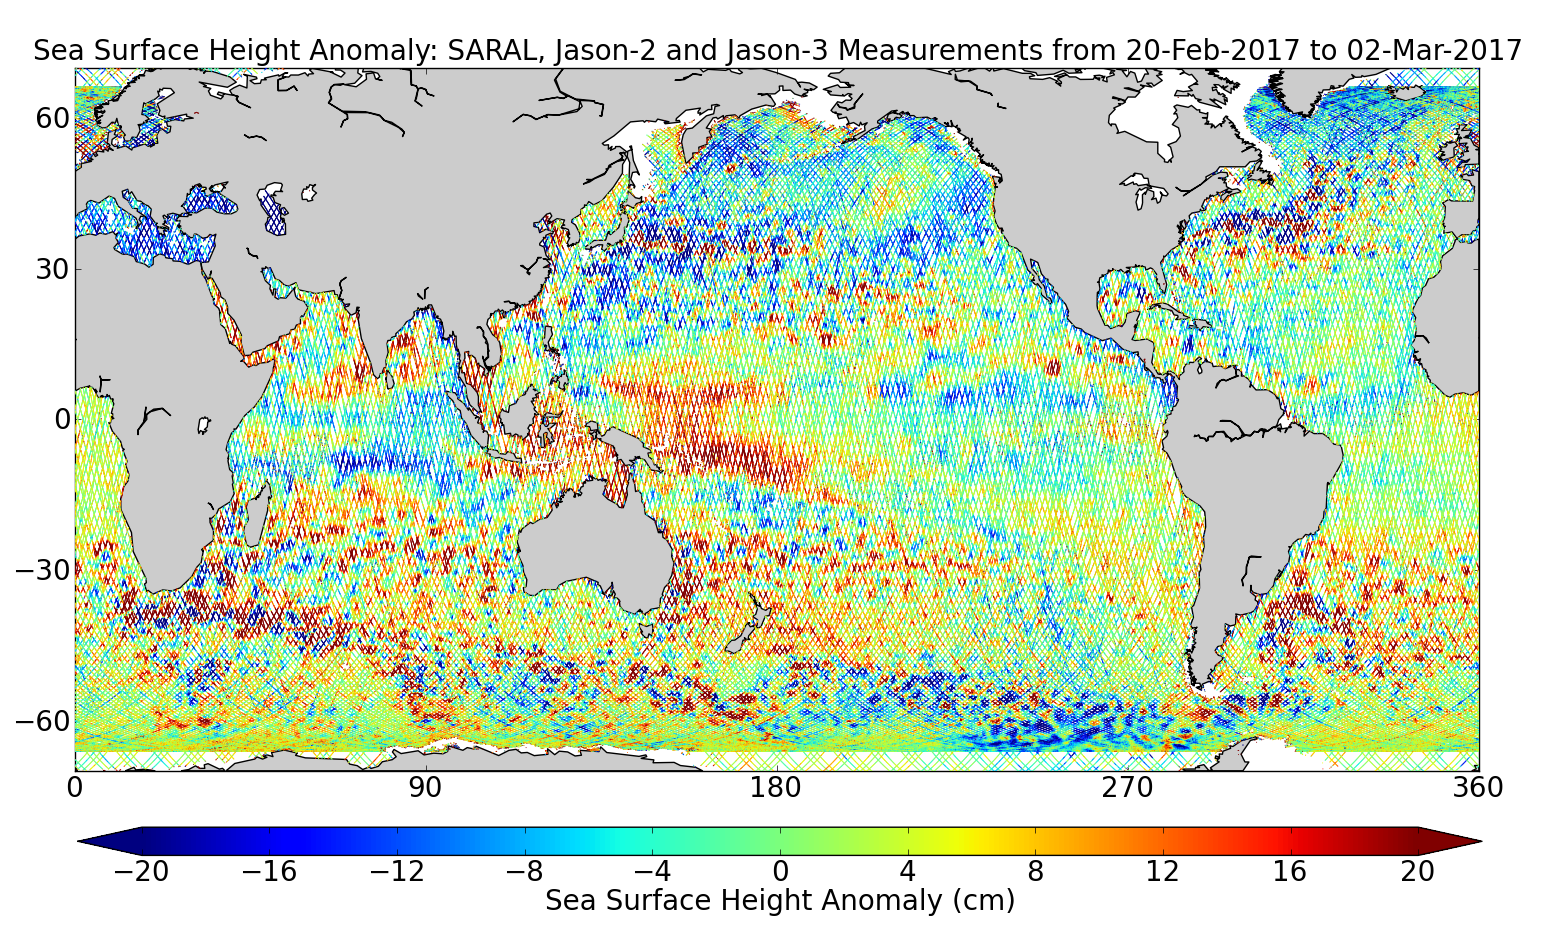 Sea Surface Height Anomaly: SARAL, Jason-2 and Jason-3 Measurements from 20-Feb-2017 to 02-Mar-2017